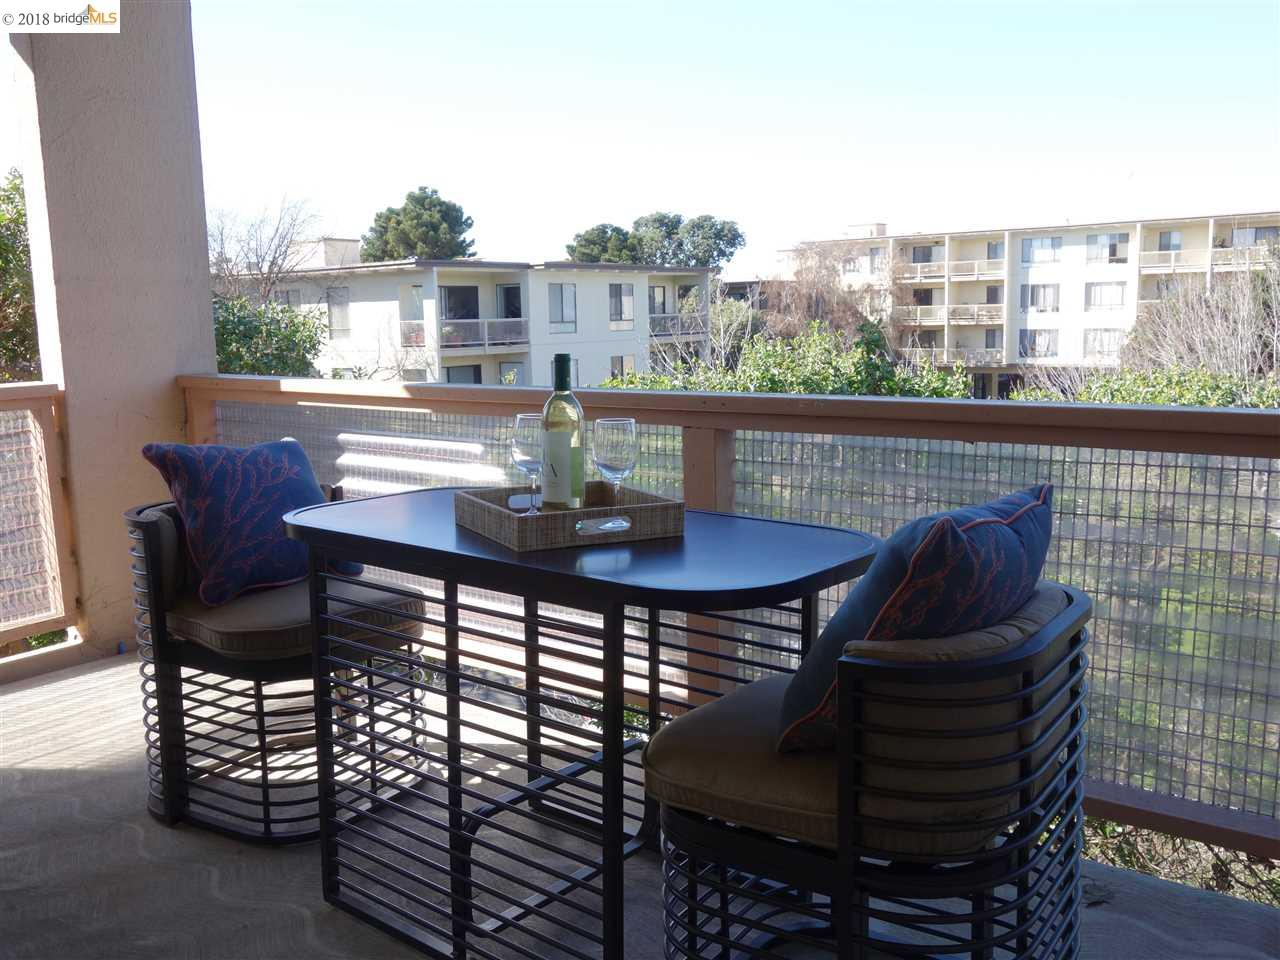 Condominium for Sale at 4 Commodore Drive 4 Commodore Drive Emeryville, California 94608 United States